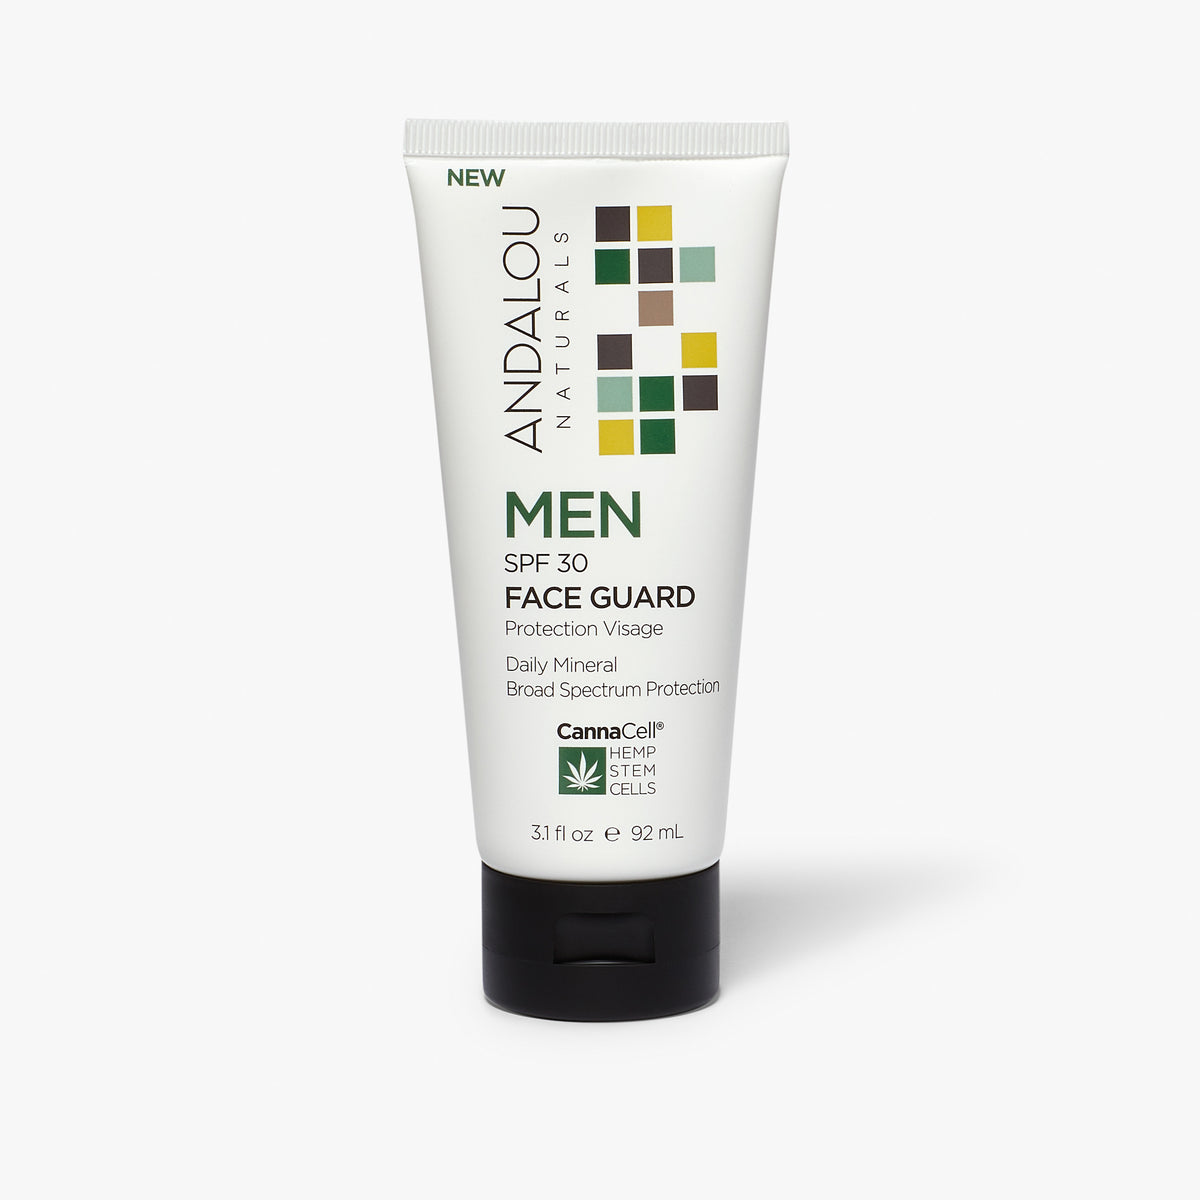 MEN SPF 30 Face Guard - Andalou Naturals US